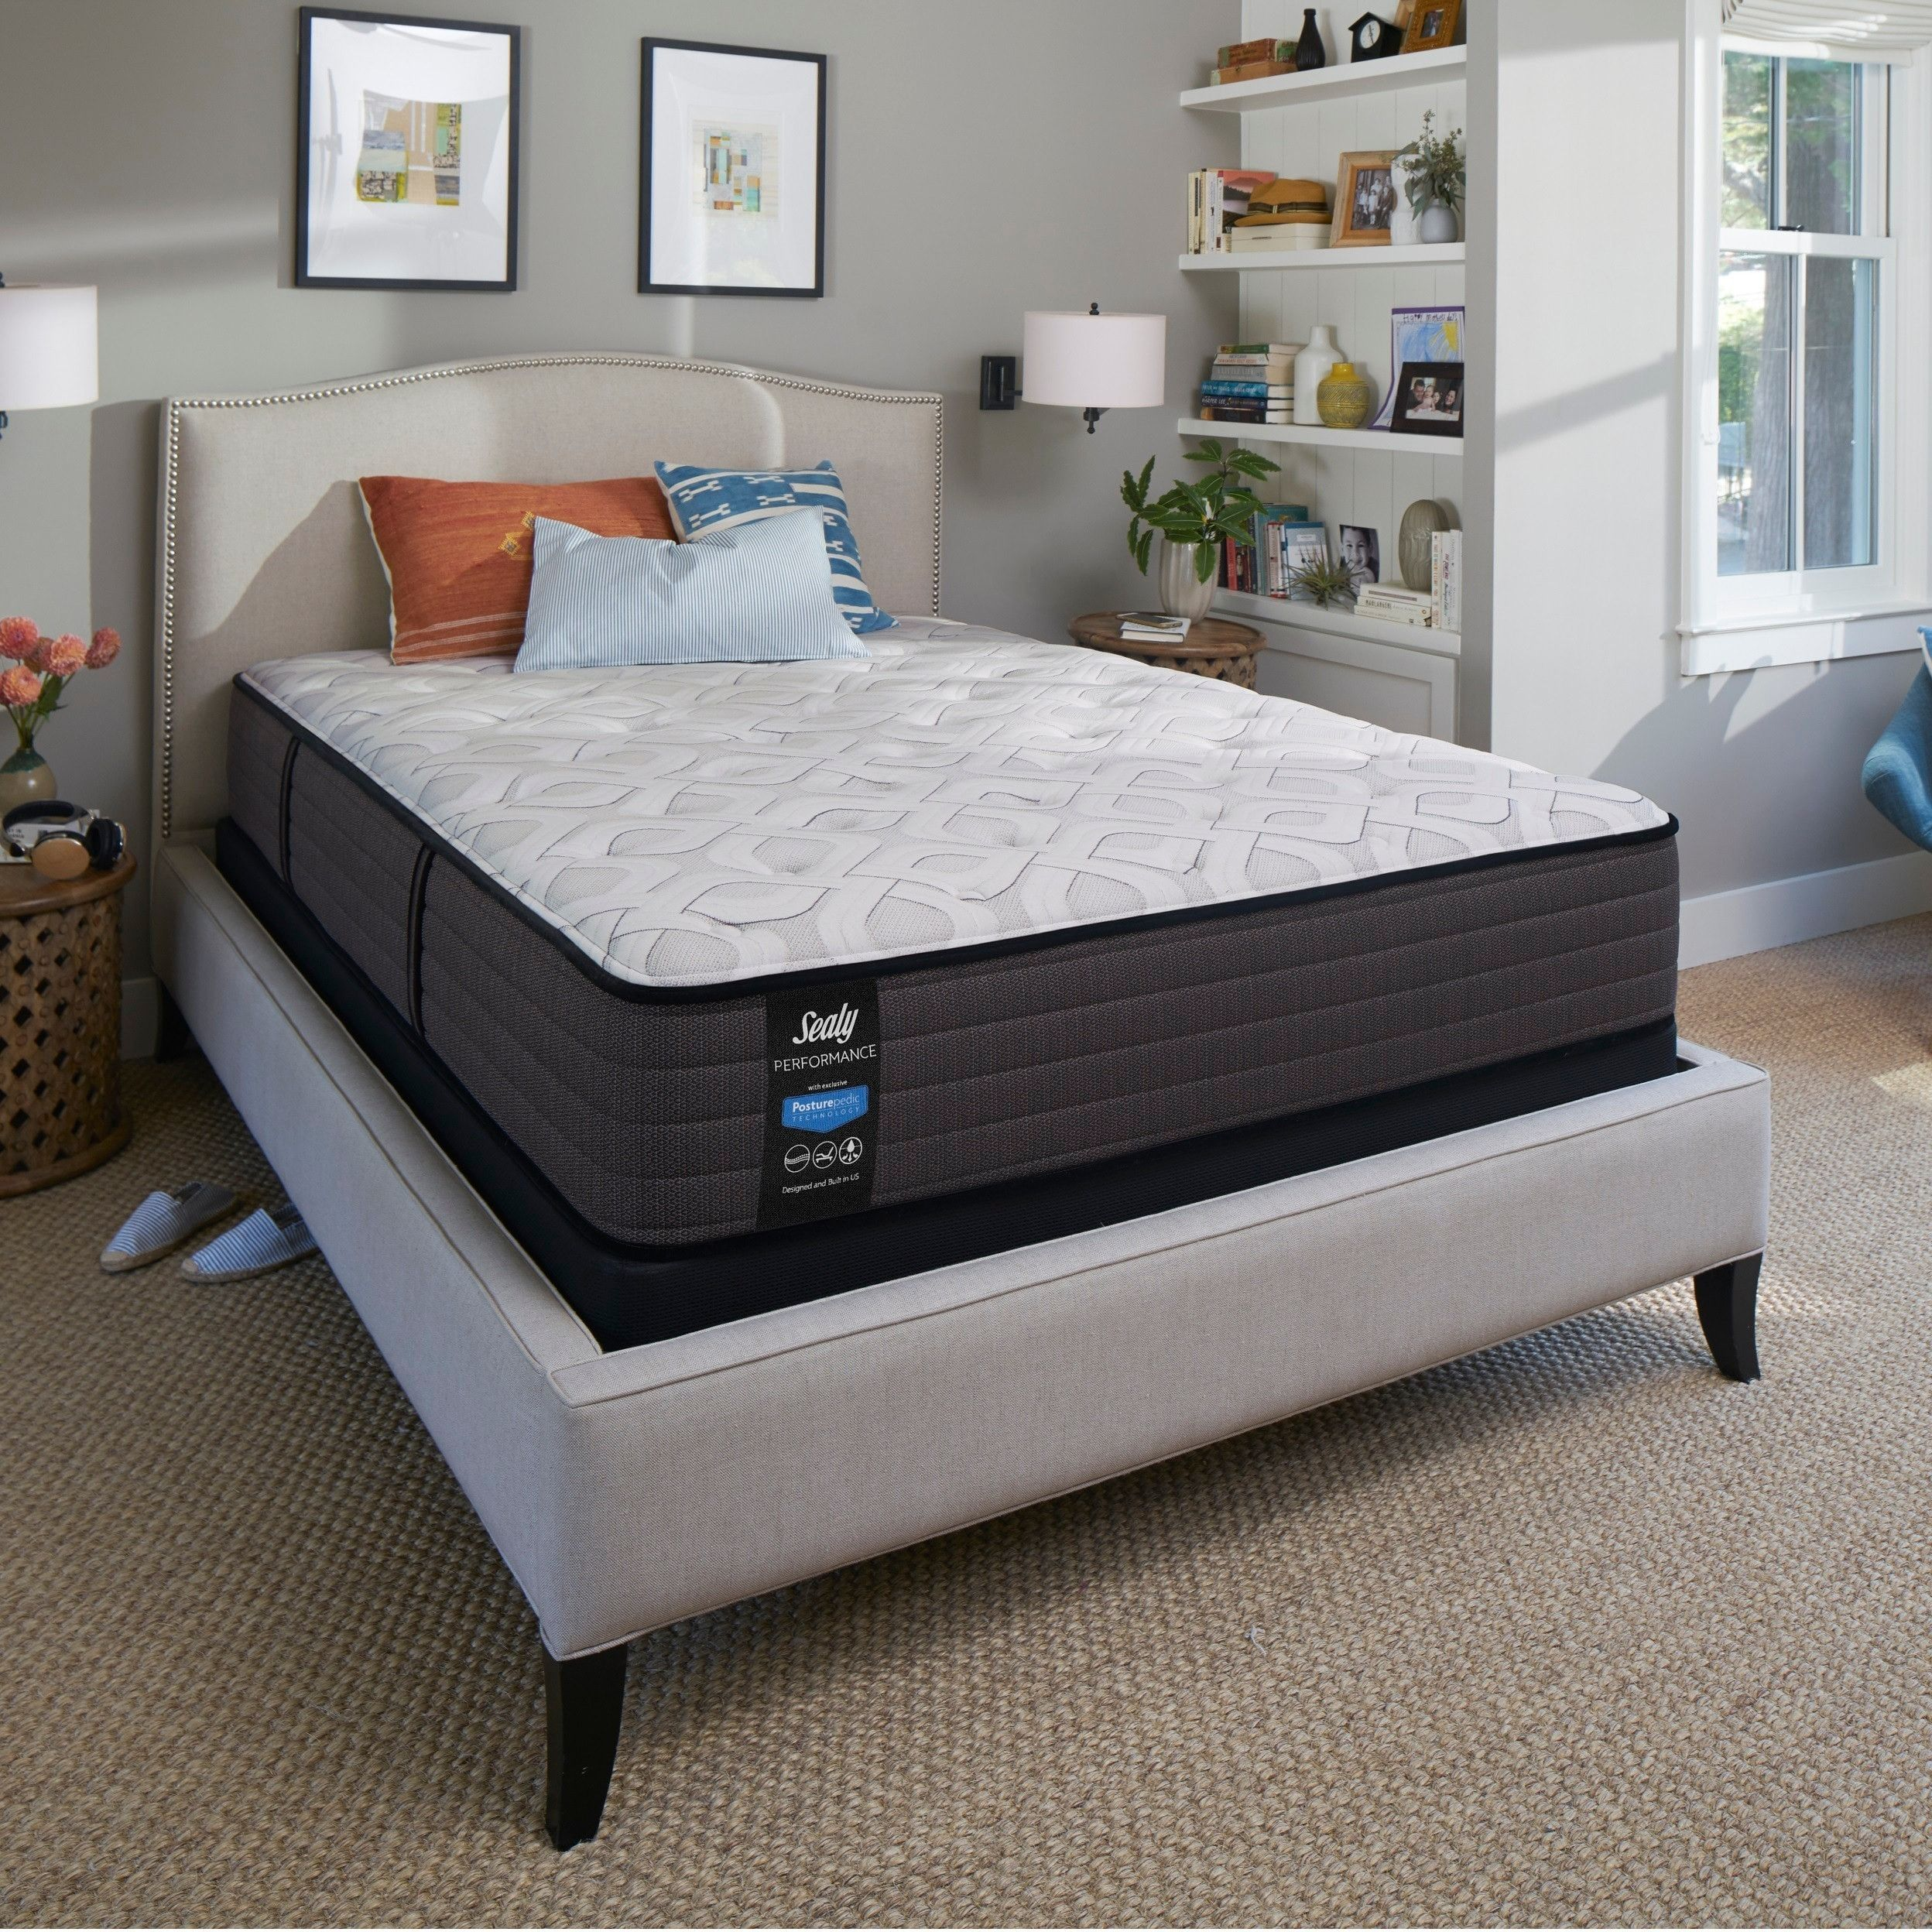 30 Breathtaking Mattress Firm Queen Bed Frame Ideas Mattress